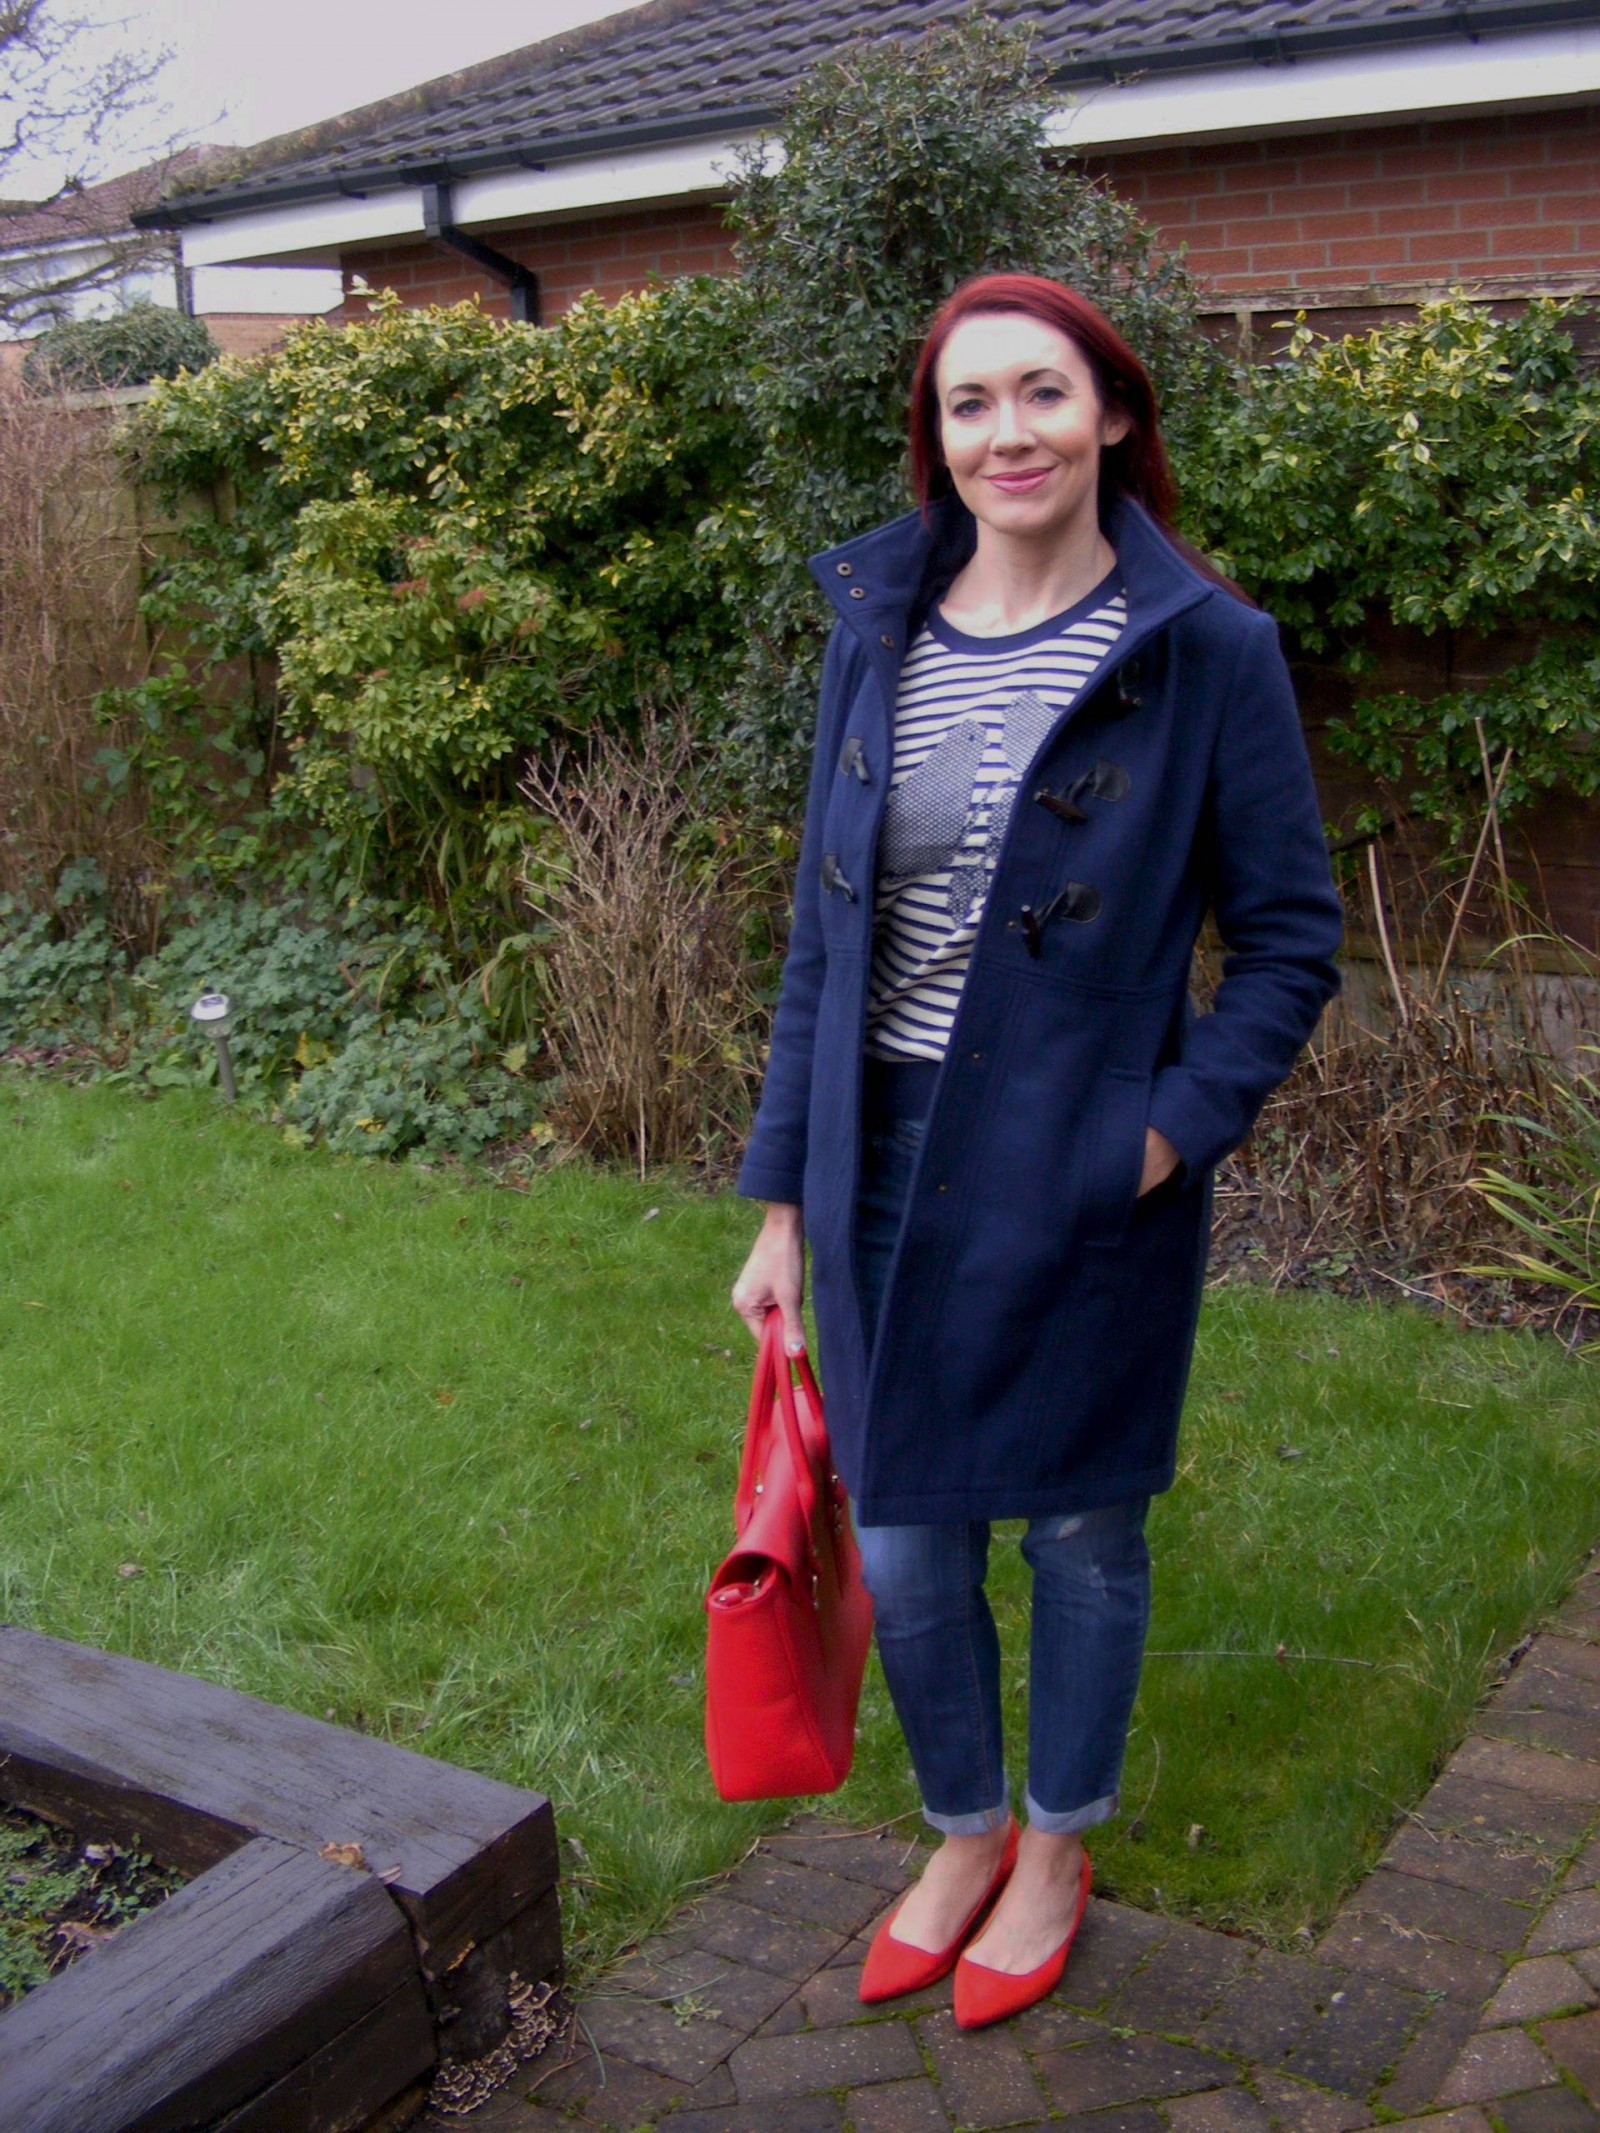 Navy Dickens and Jones duffle coat